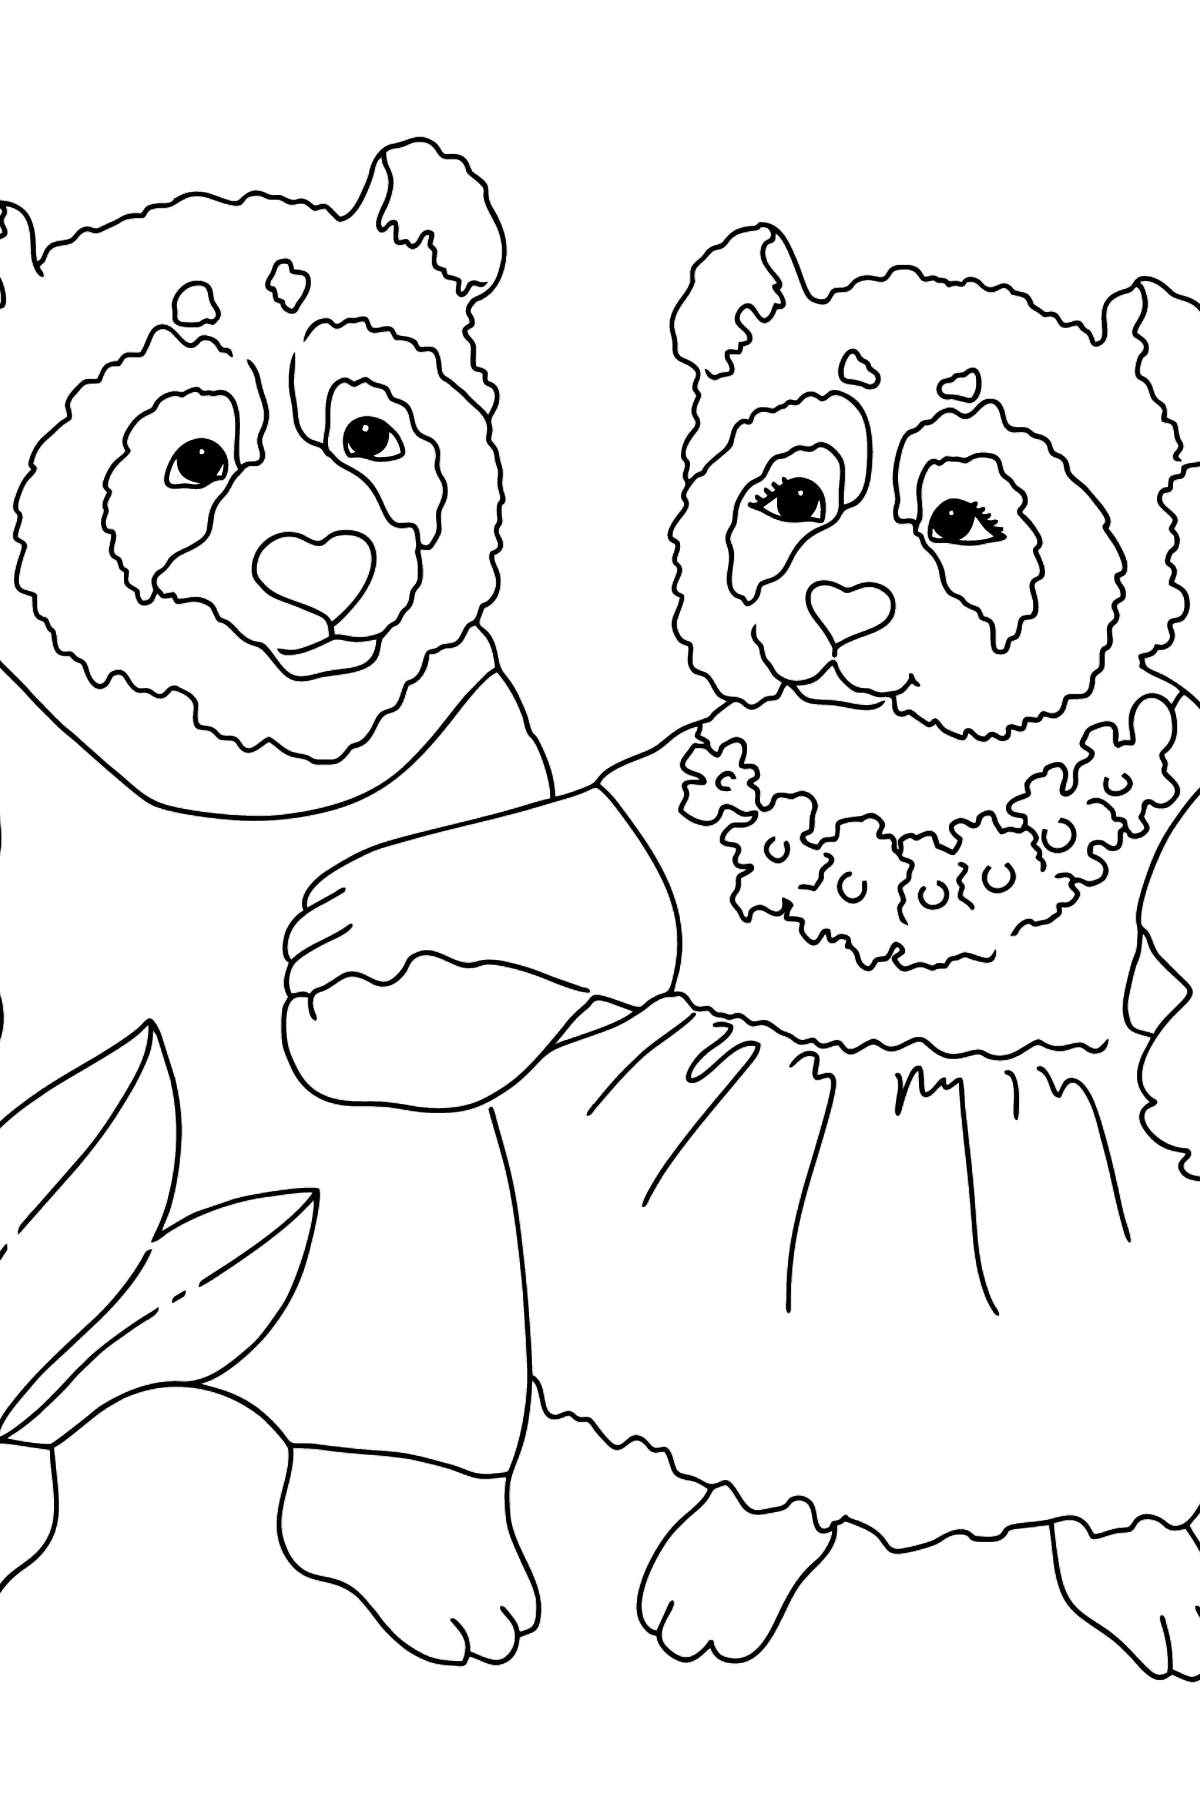 Coloring Page - Pandas Taking a Walk - Coloring Pages for Kids